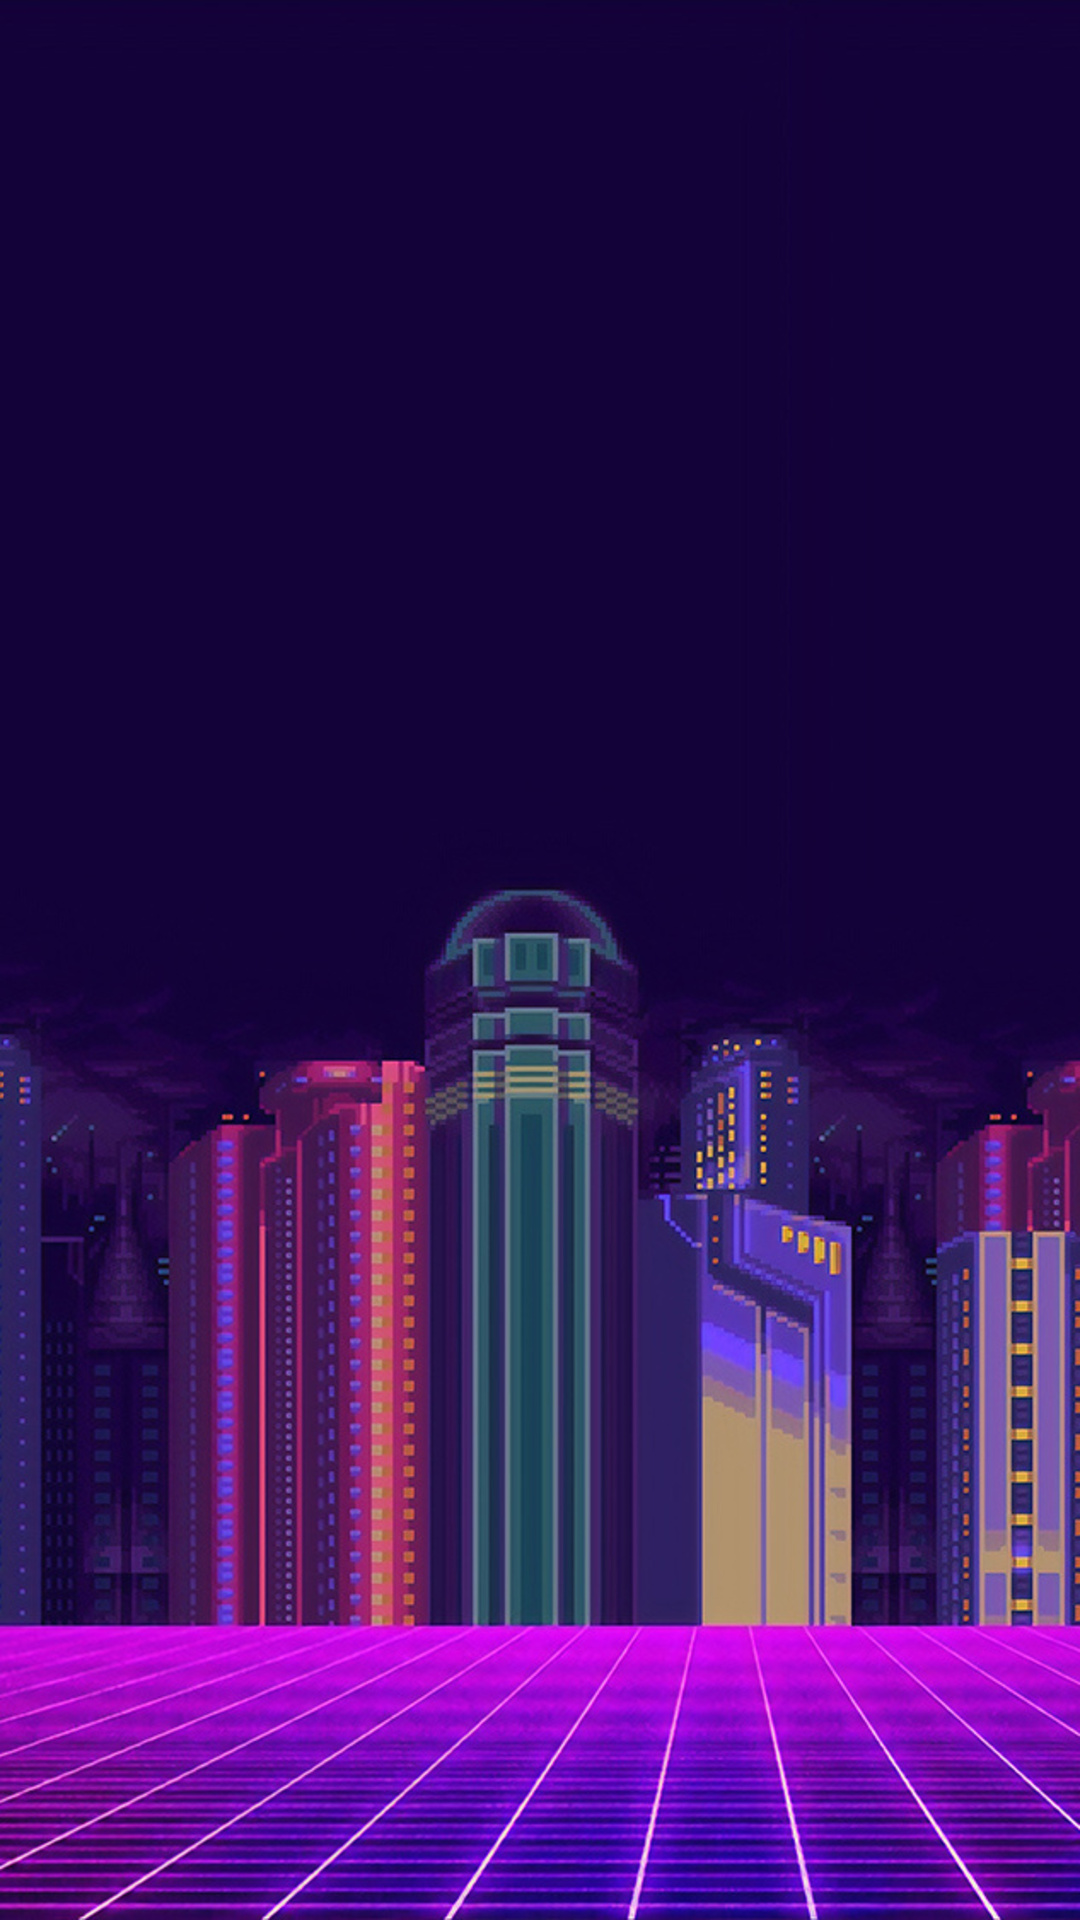 synthwave-buildings-8-bit-tt.jpg